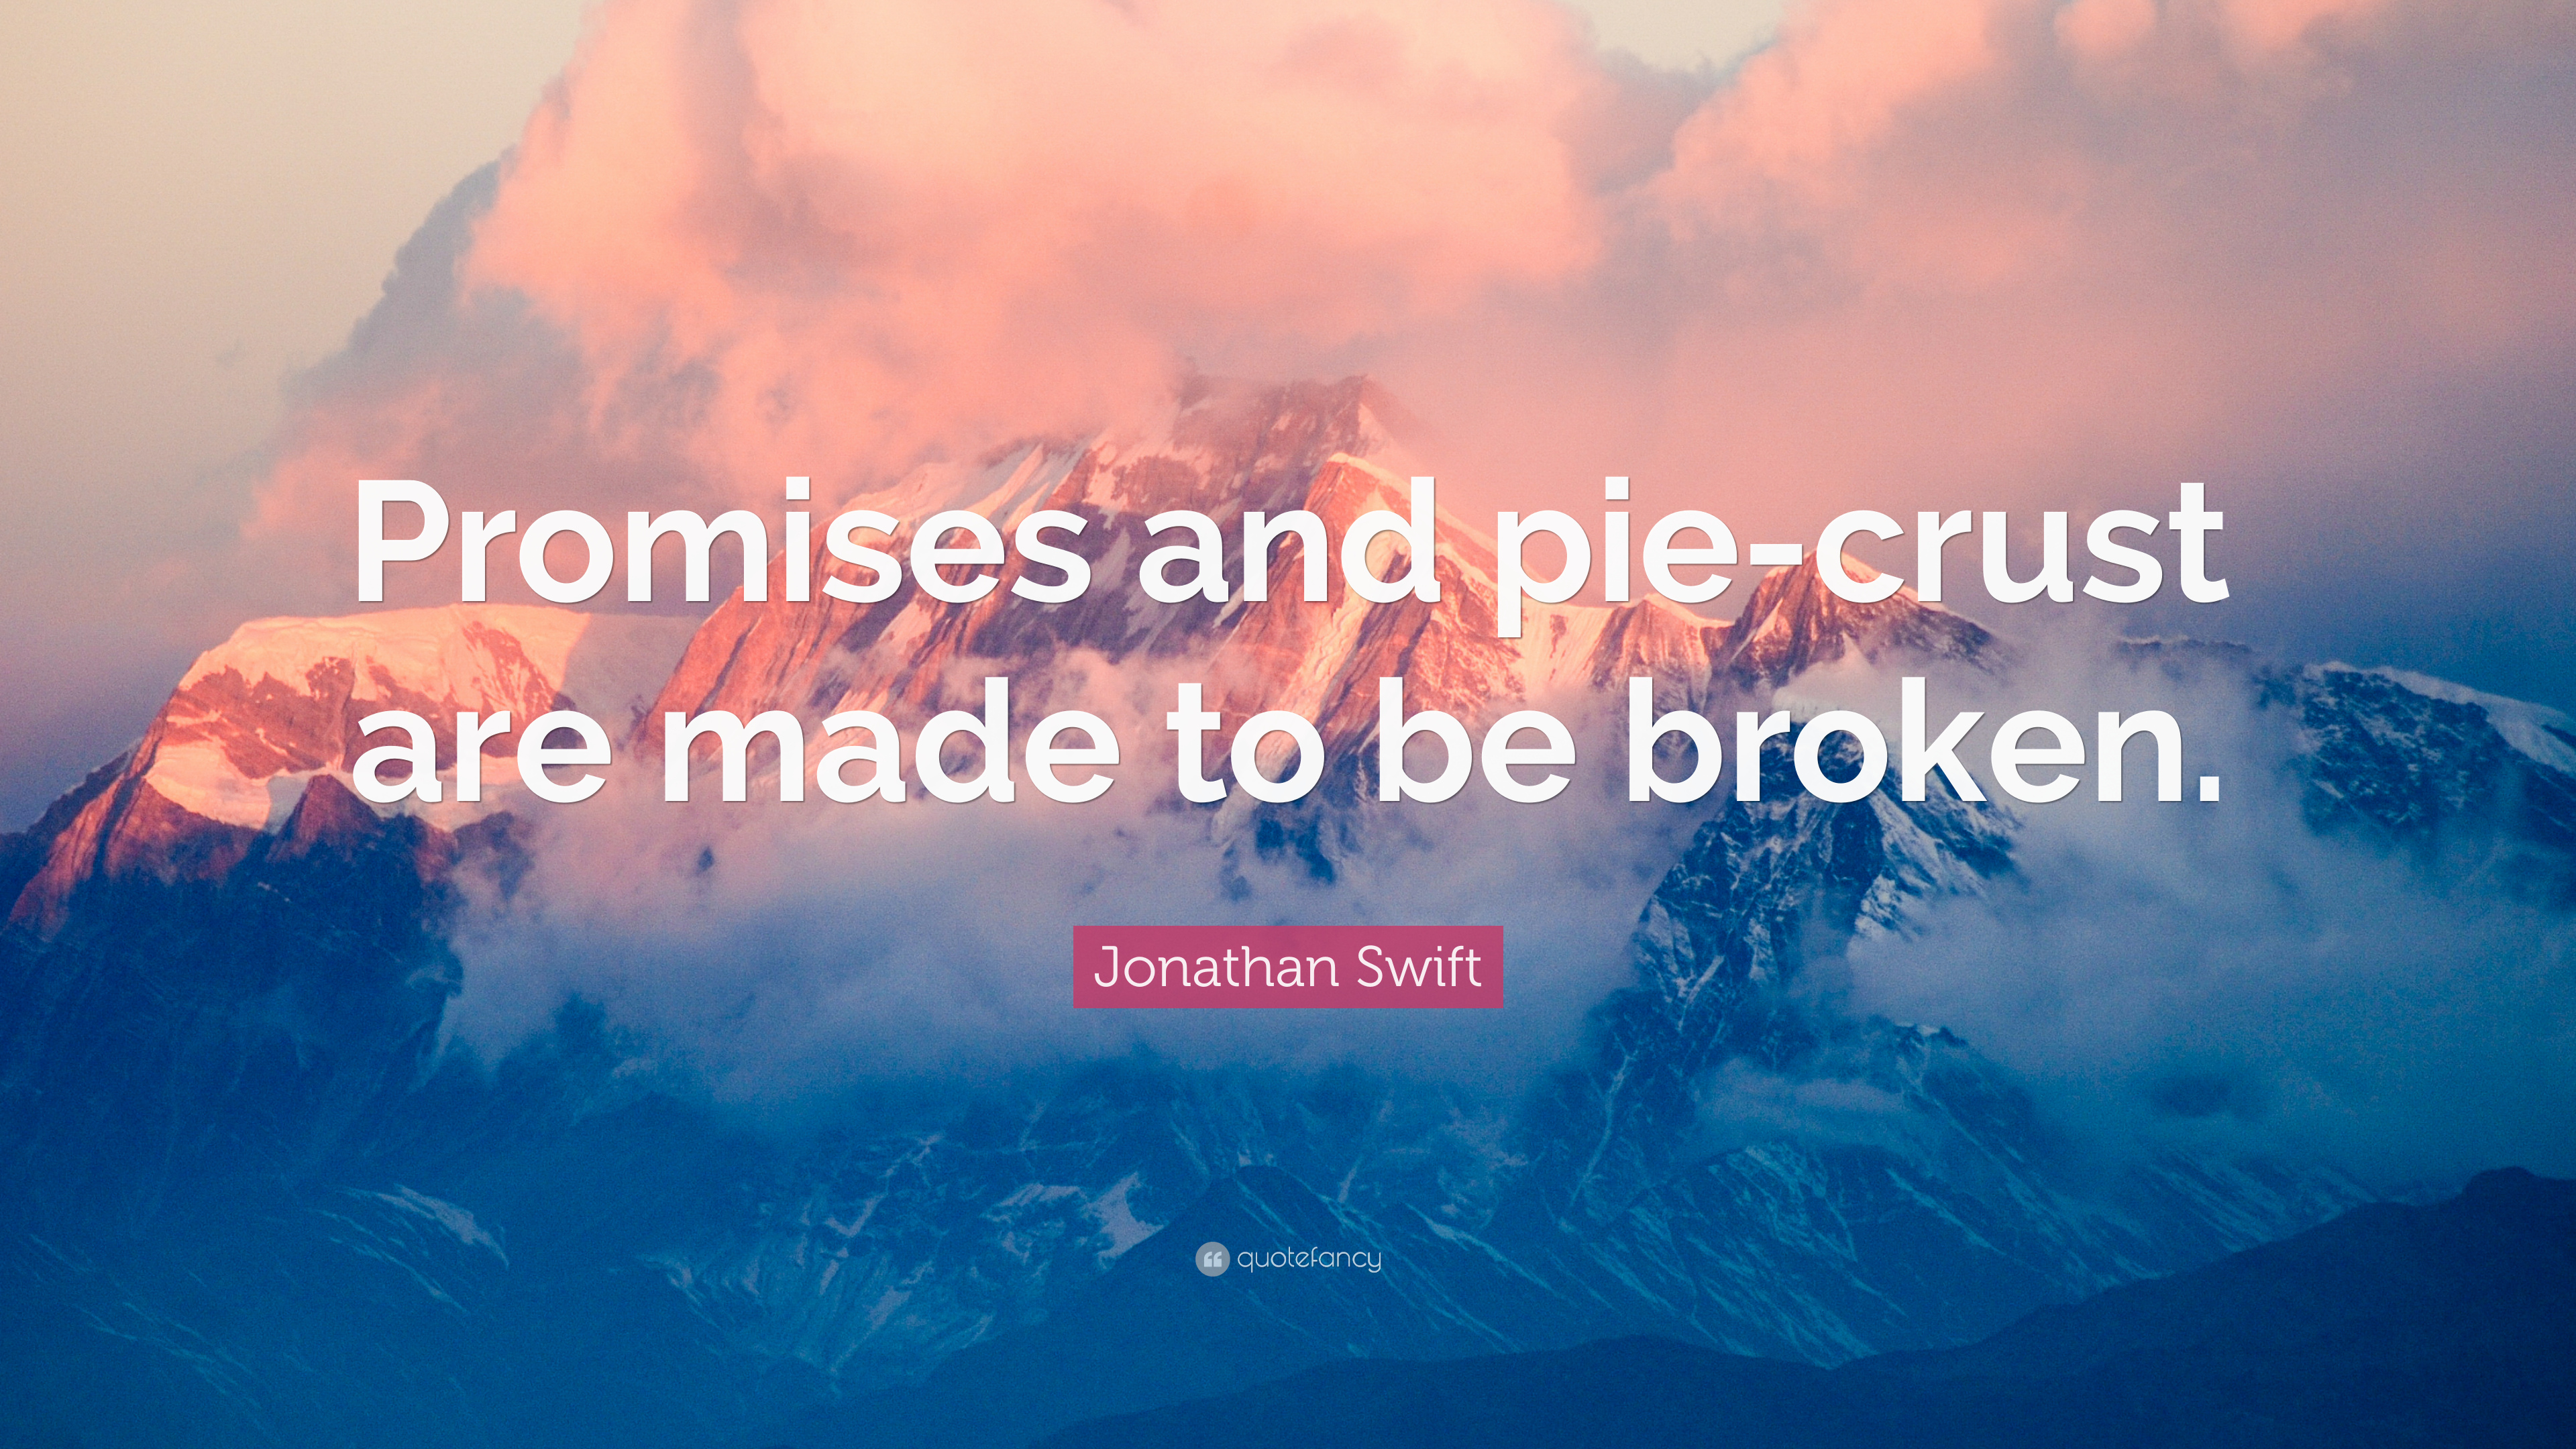 Jonathan Swift Quote Promises And Pie Crust Are Made To Be Broken